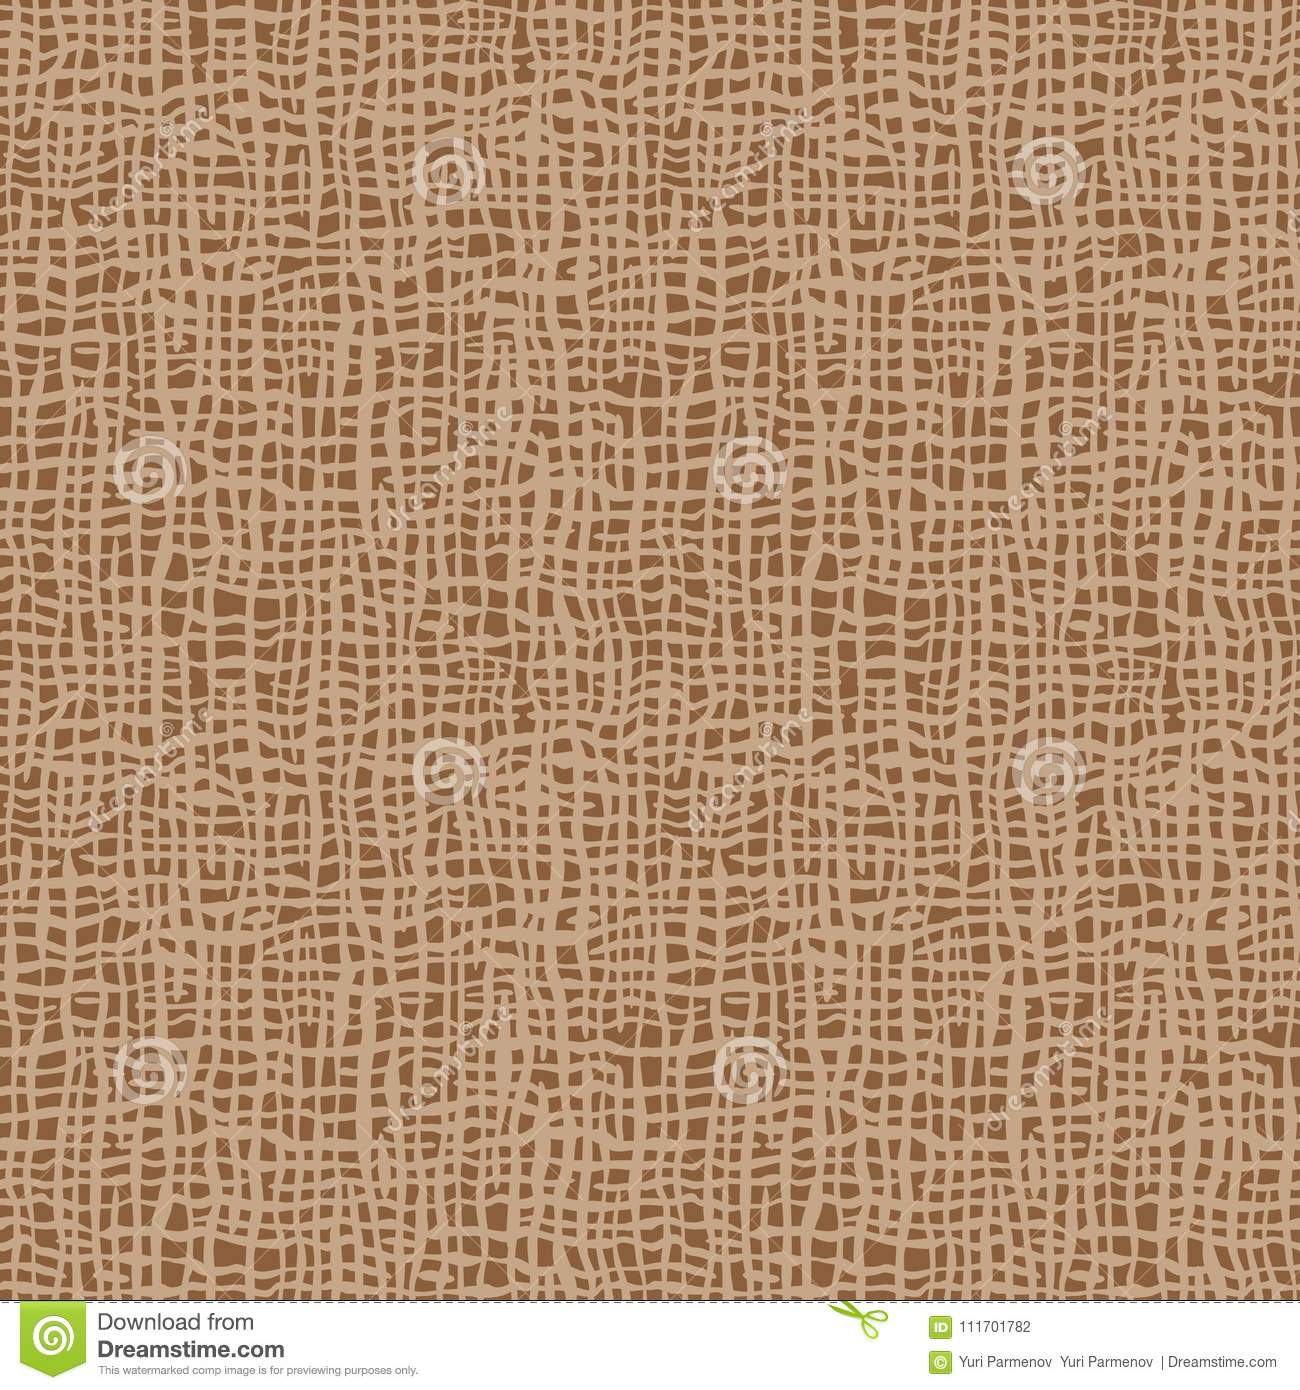 Burlap texture. Brown fabric. Canvas seamless background pattern. Cloth linen sack backdrop.